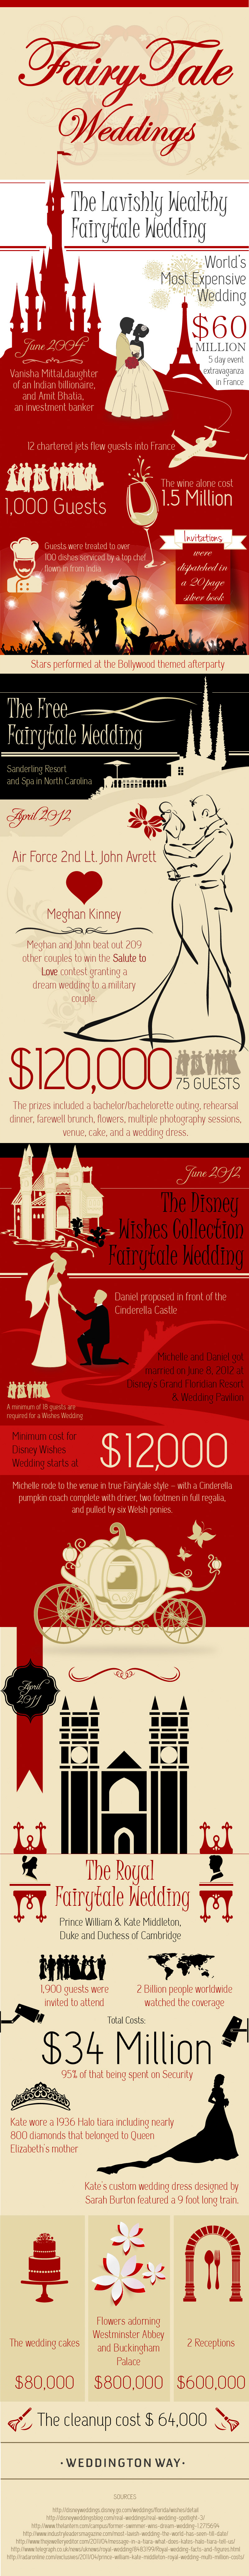 Fabulous Fairy Tale wedding